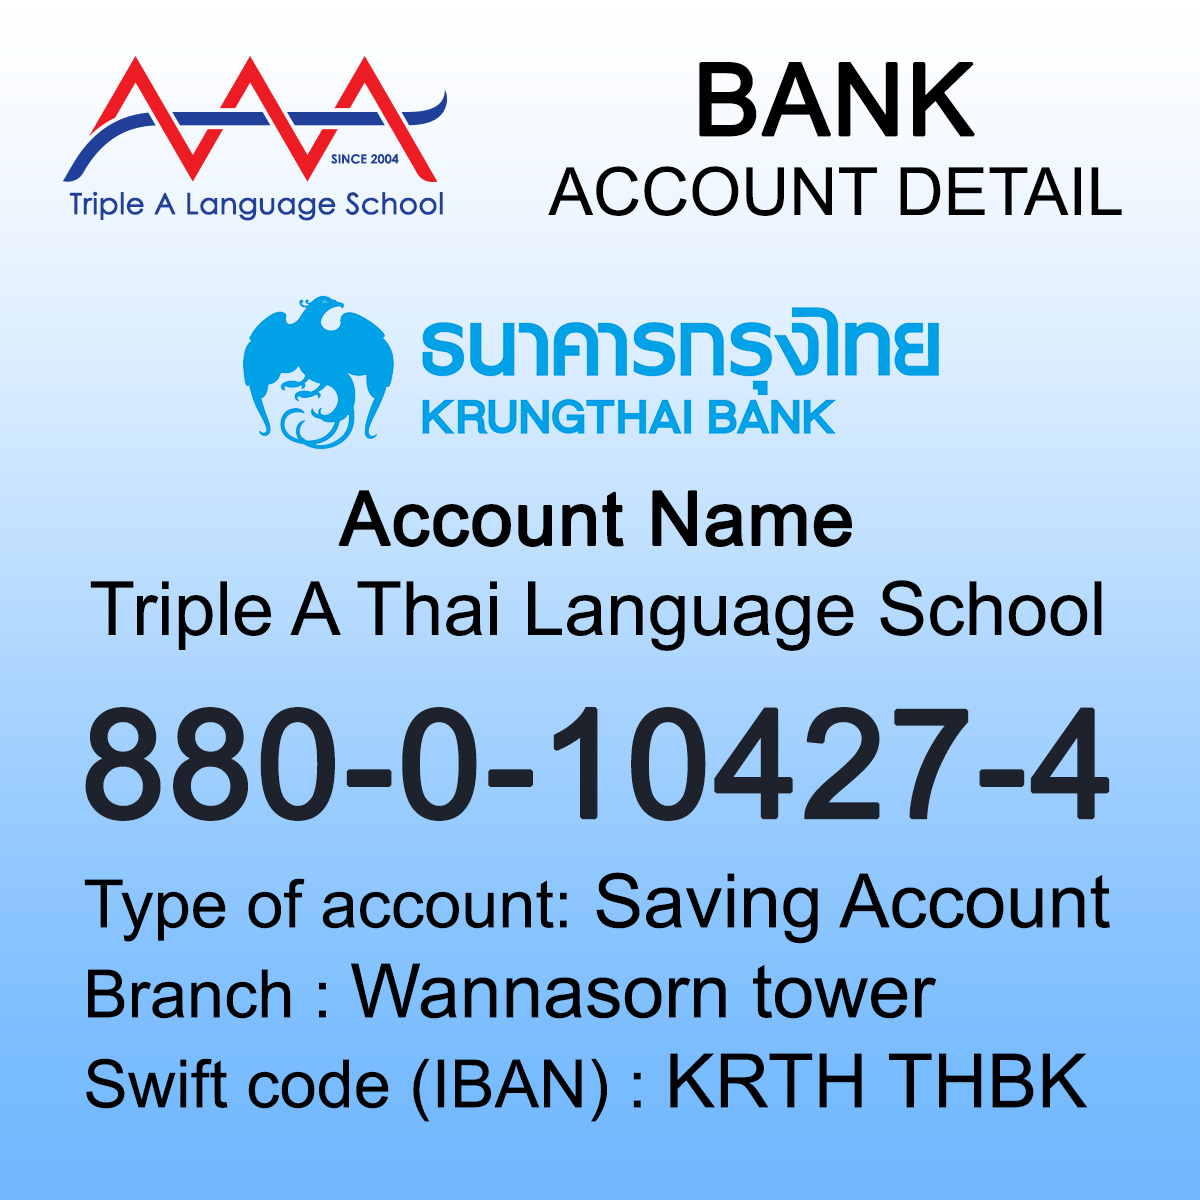 Payment - AAA Thai Language School